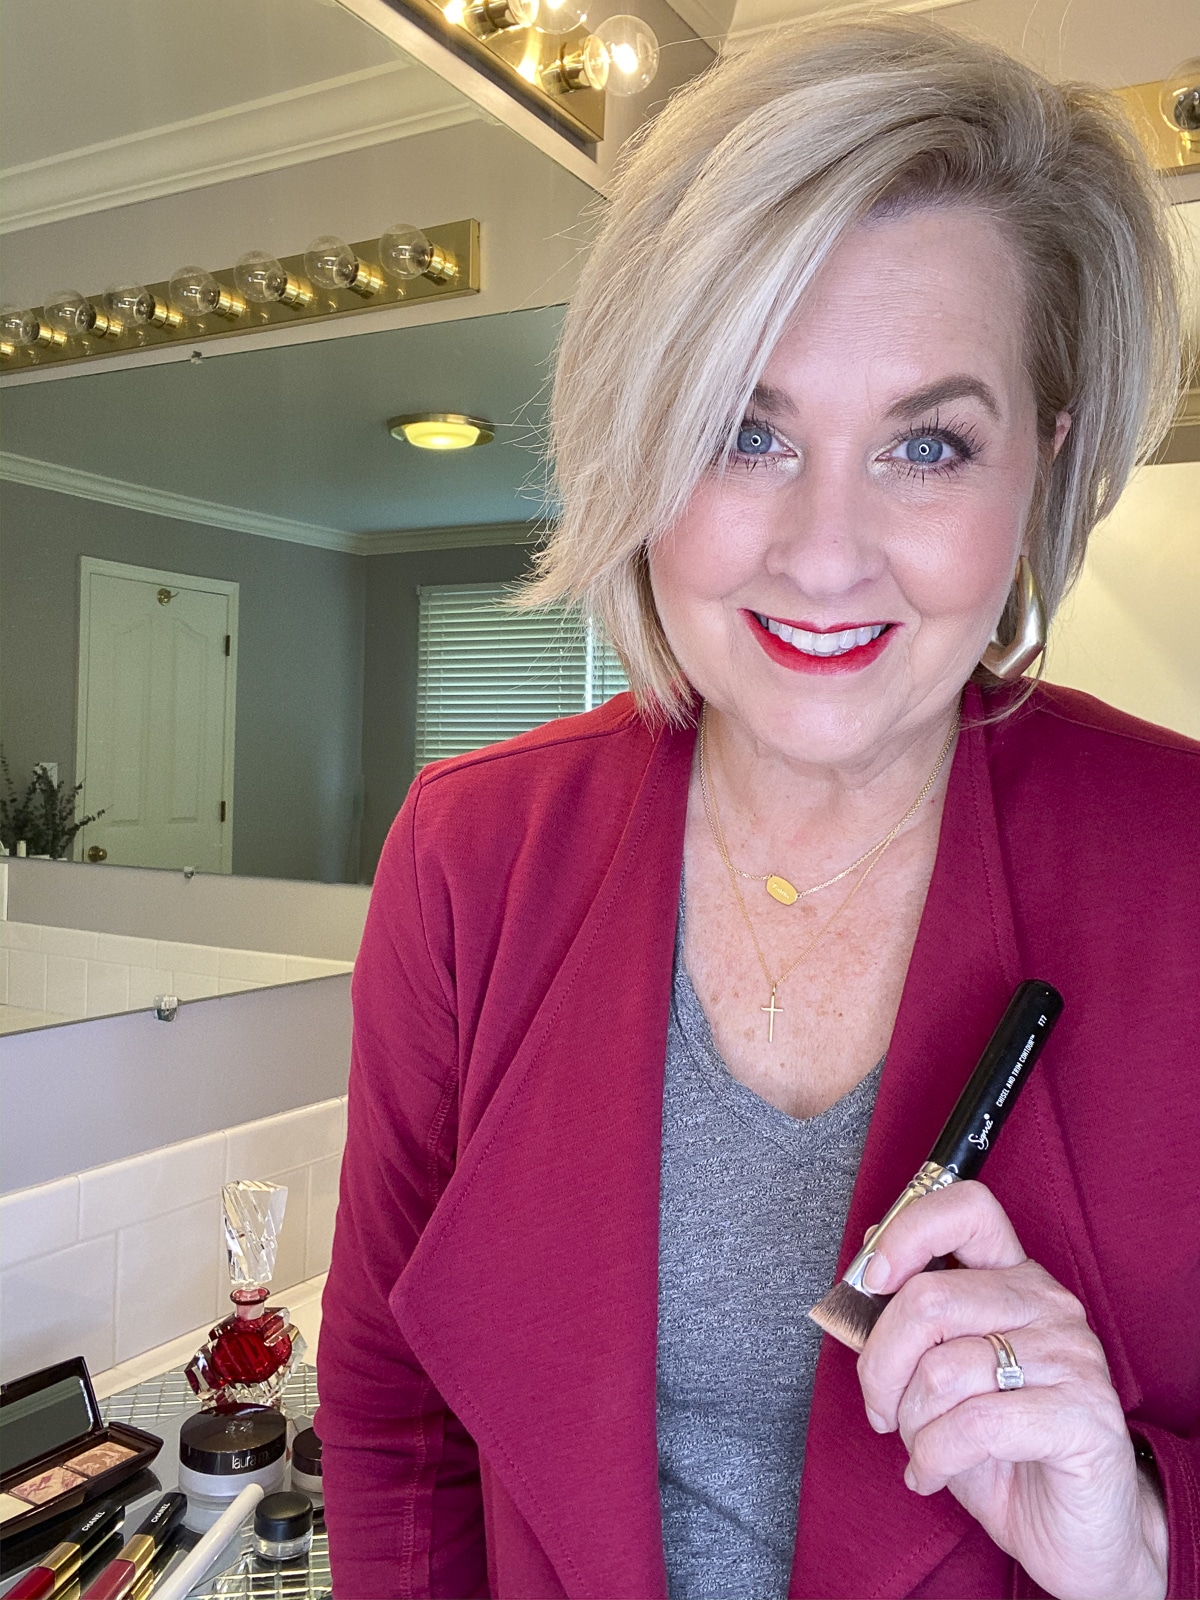 Fashion Blogger 50 Is Not Old showing her freshly applied makeup from her one stop shop for all things beauty - Nordstrom